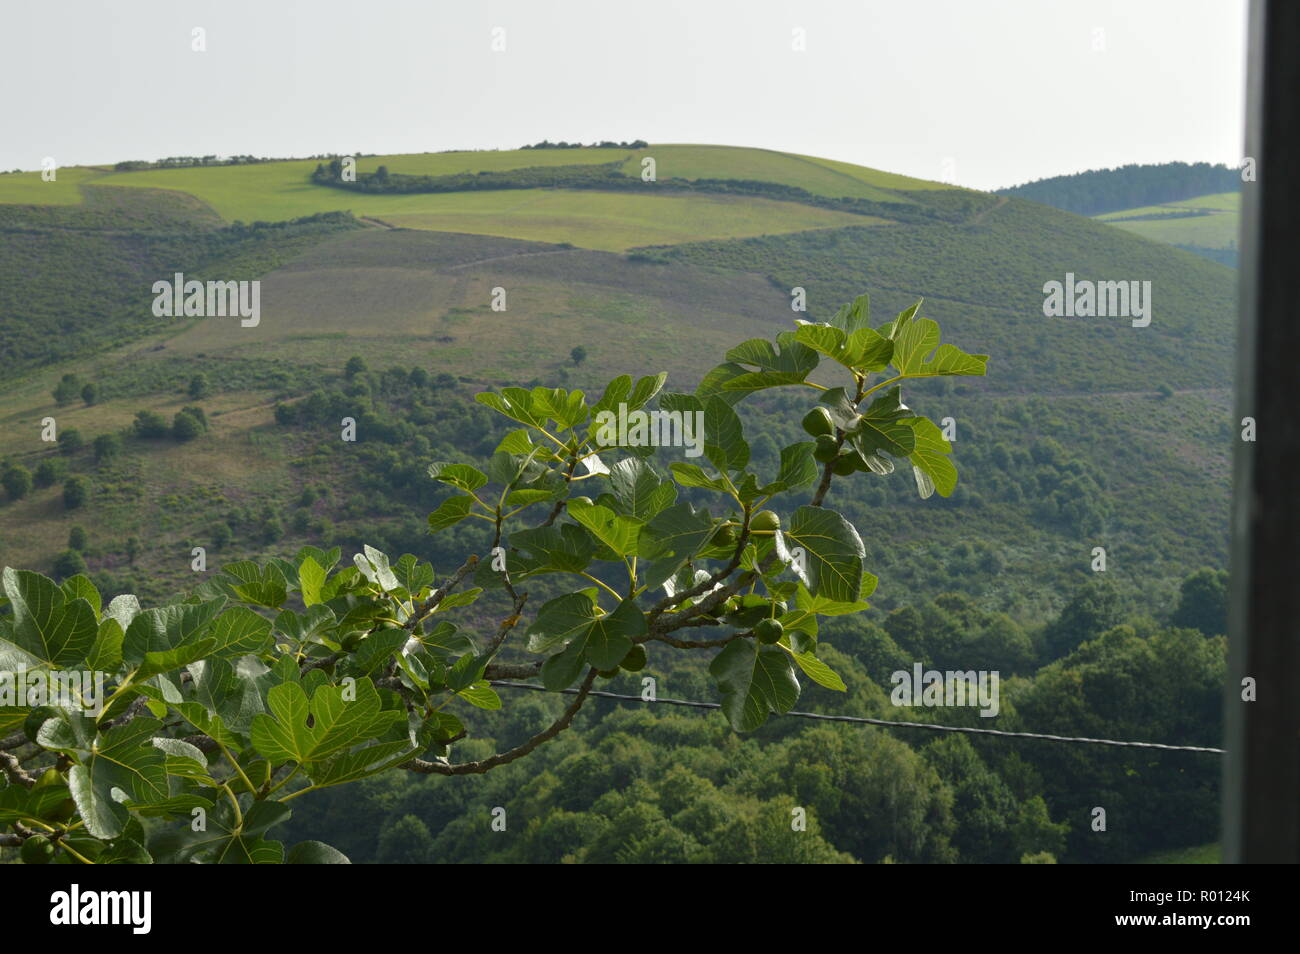 Branches Of A Fig Tree With Views Over The Mountain Of Lugo In Galicia. Nature, Animals, Landscapes, Travel. August 2, 2018. Rebedul, Lugo, Galicia, S - Stock Image